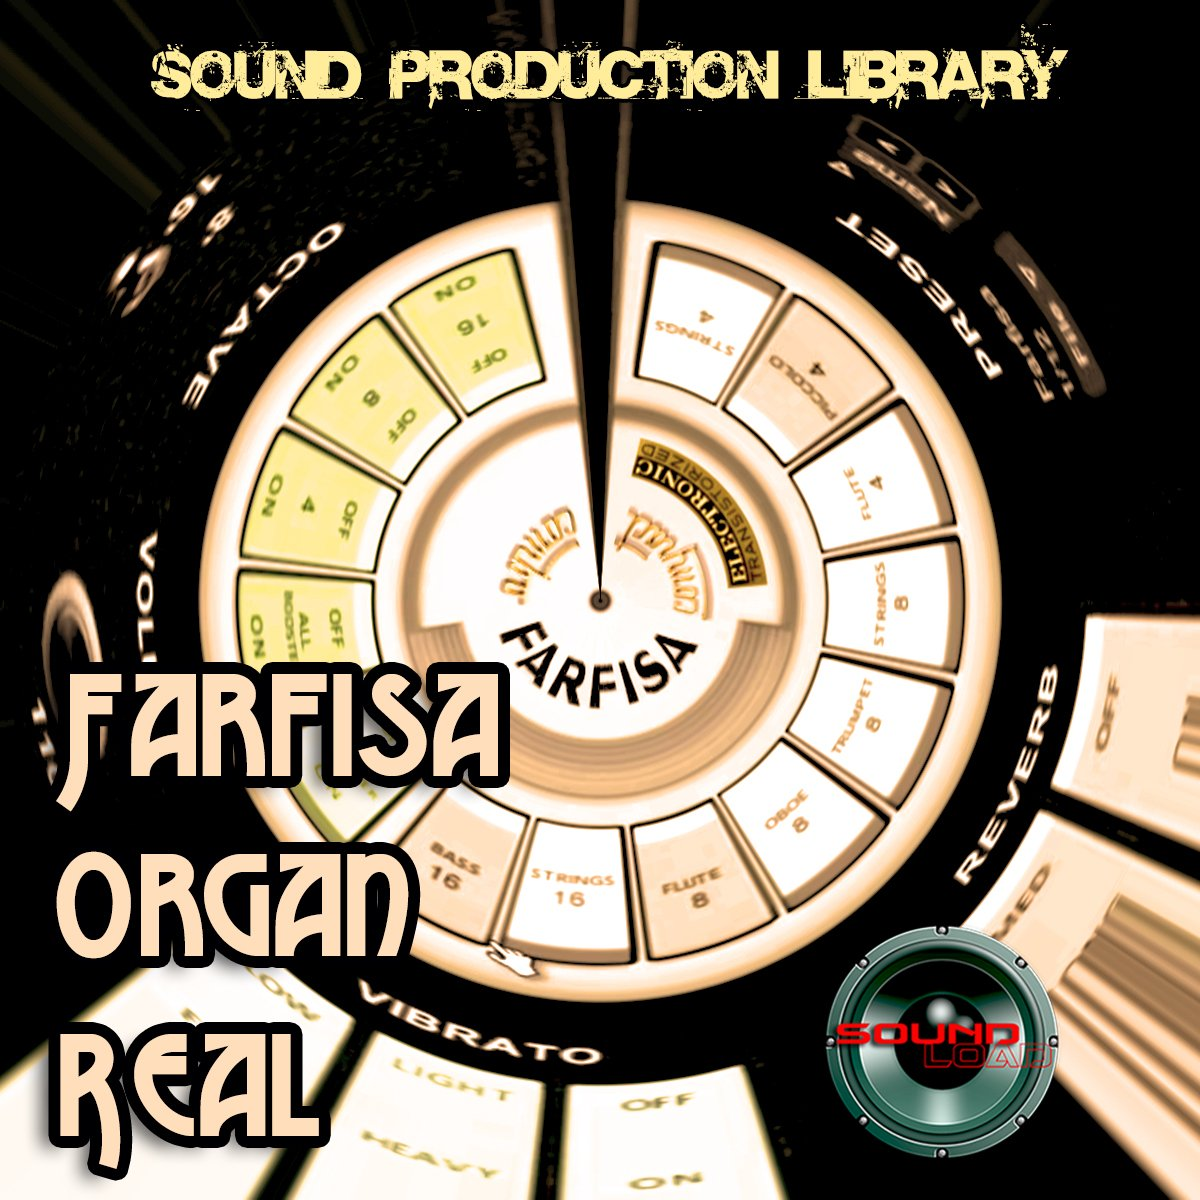 FARFISA ORGAN - THE very Best - Large unique original 24bit WAVE/Kontakt Multi-Layer Samples Library. FREE USA Continental Shipping on DVD or download; by SoundLoad